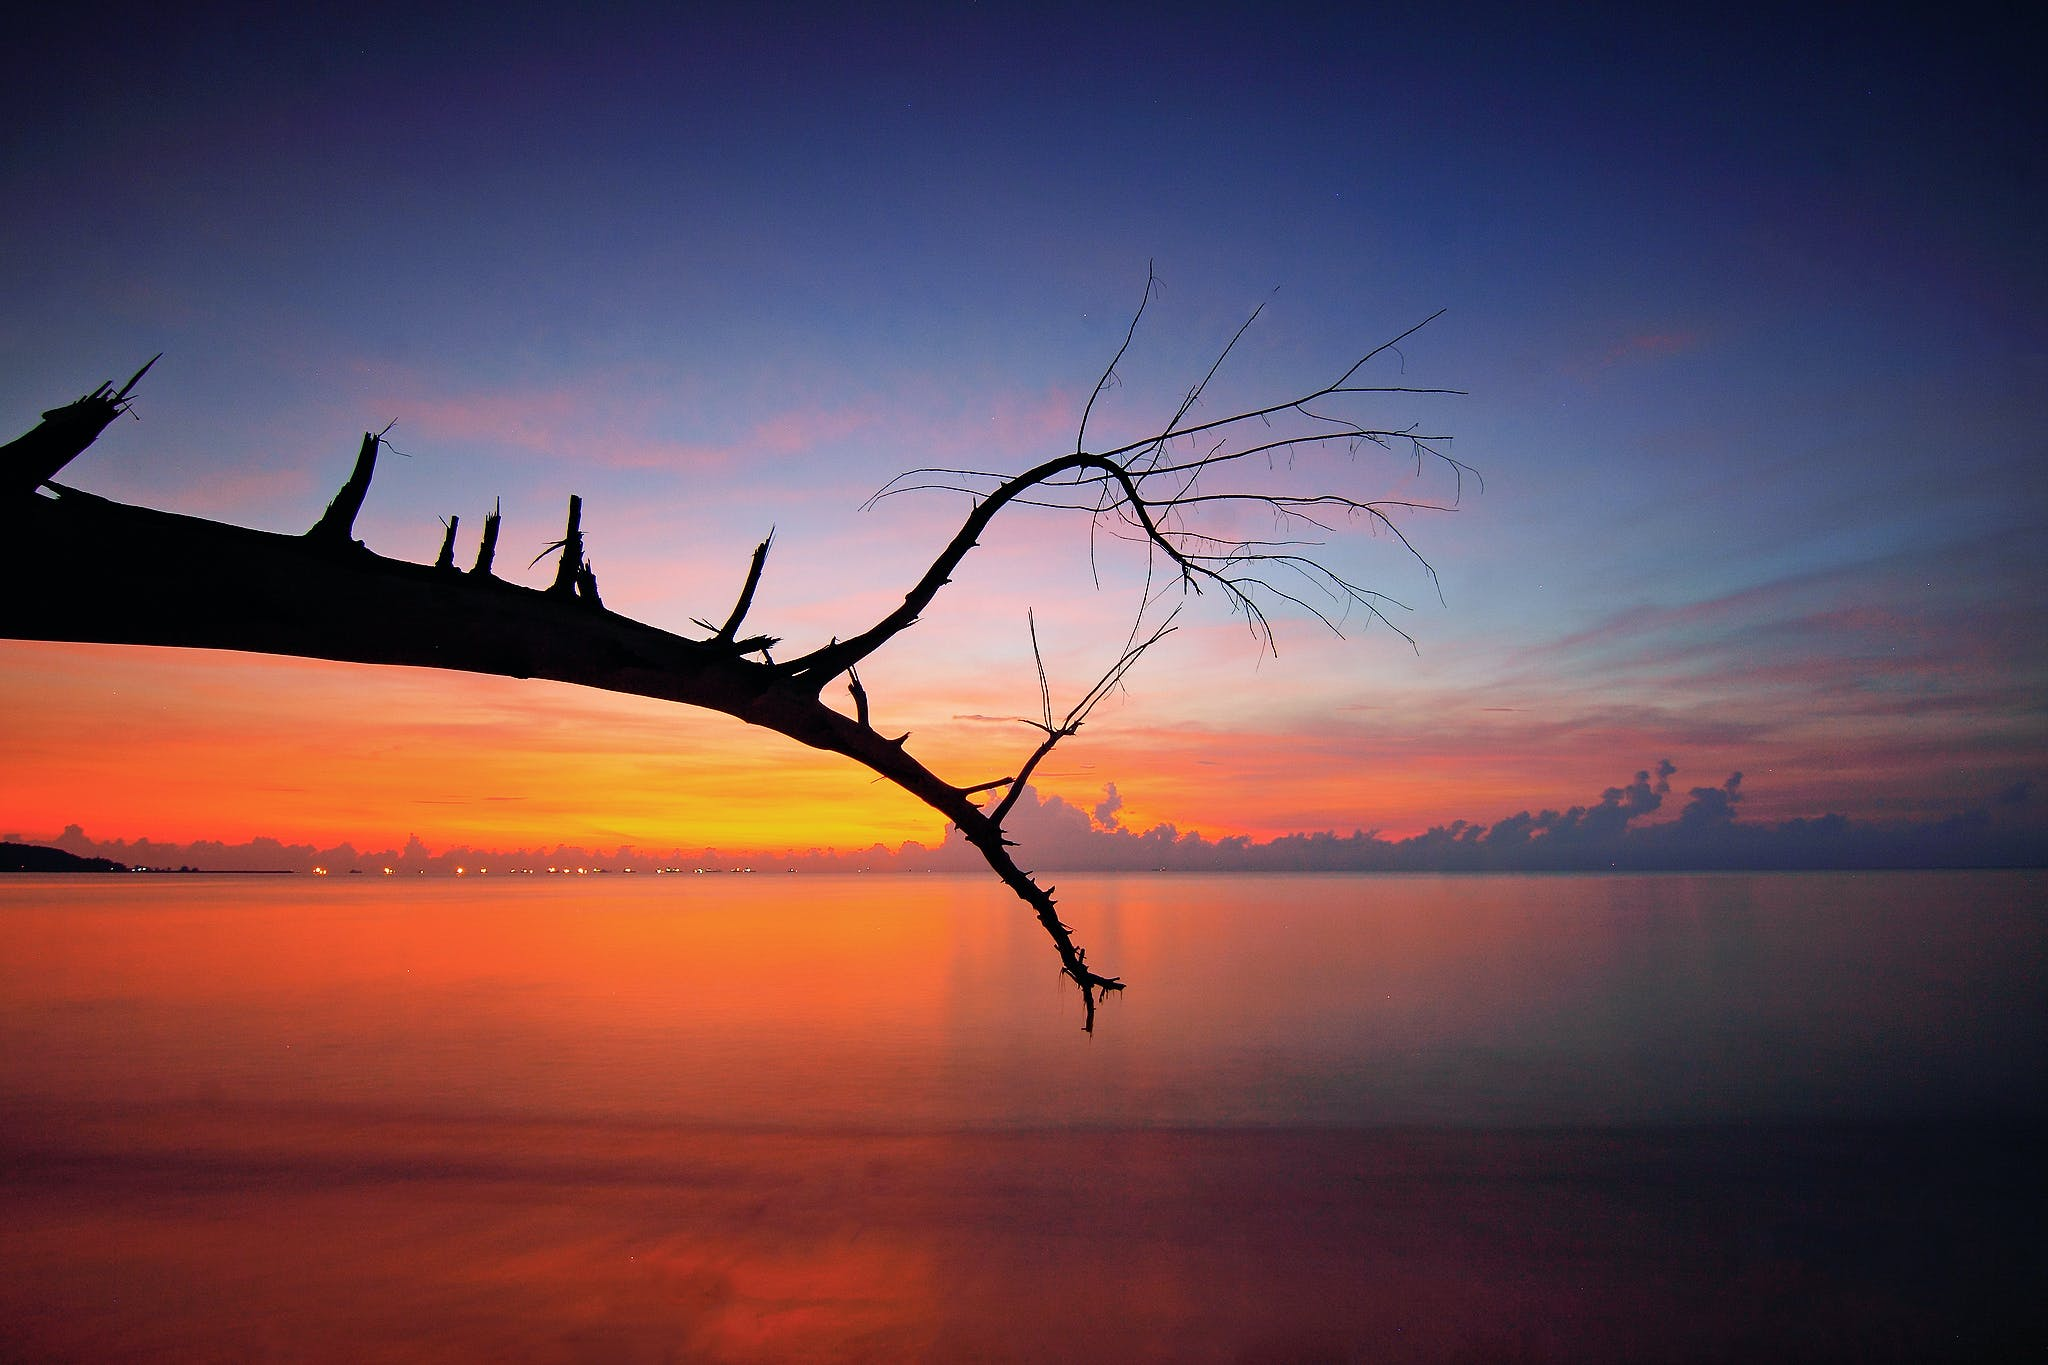 Bare Tree Branch Near Body Of Water During Sunset